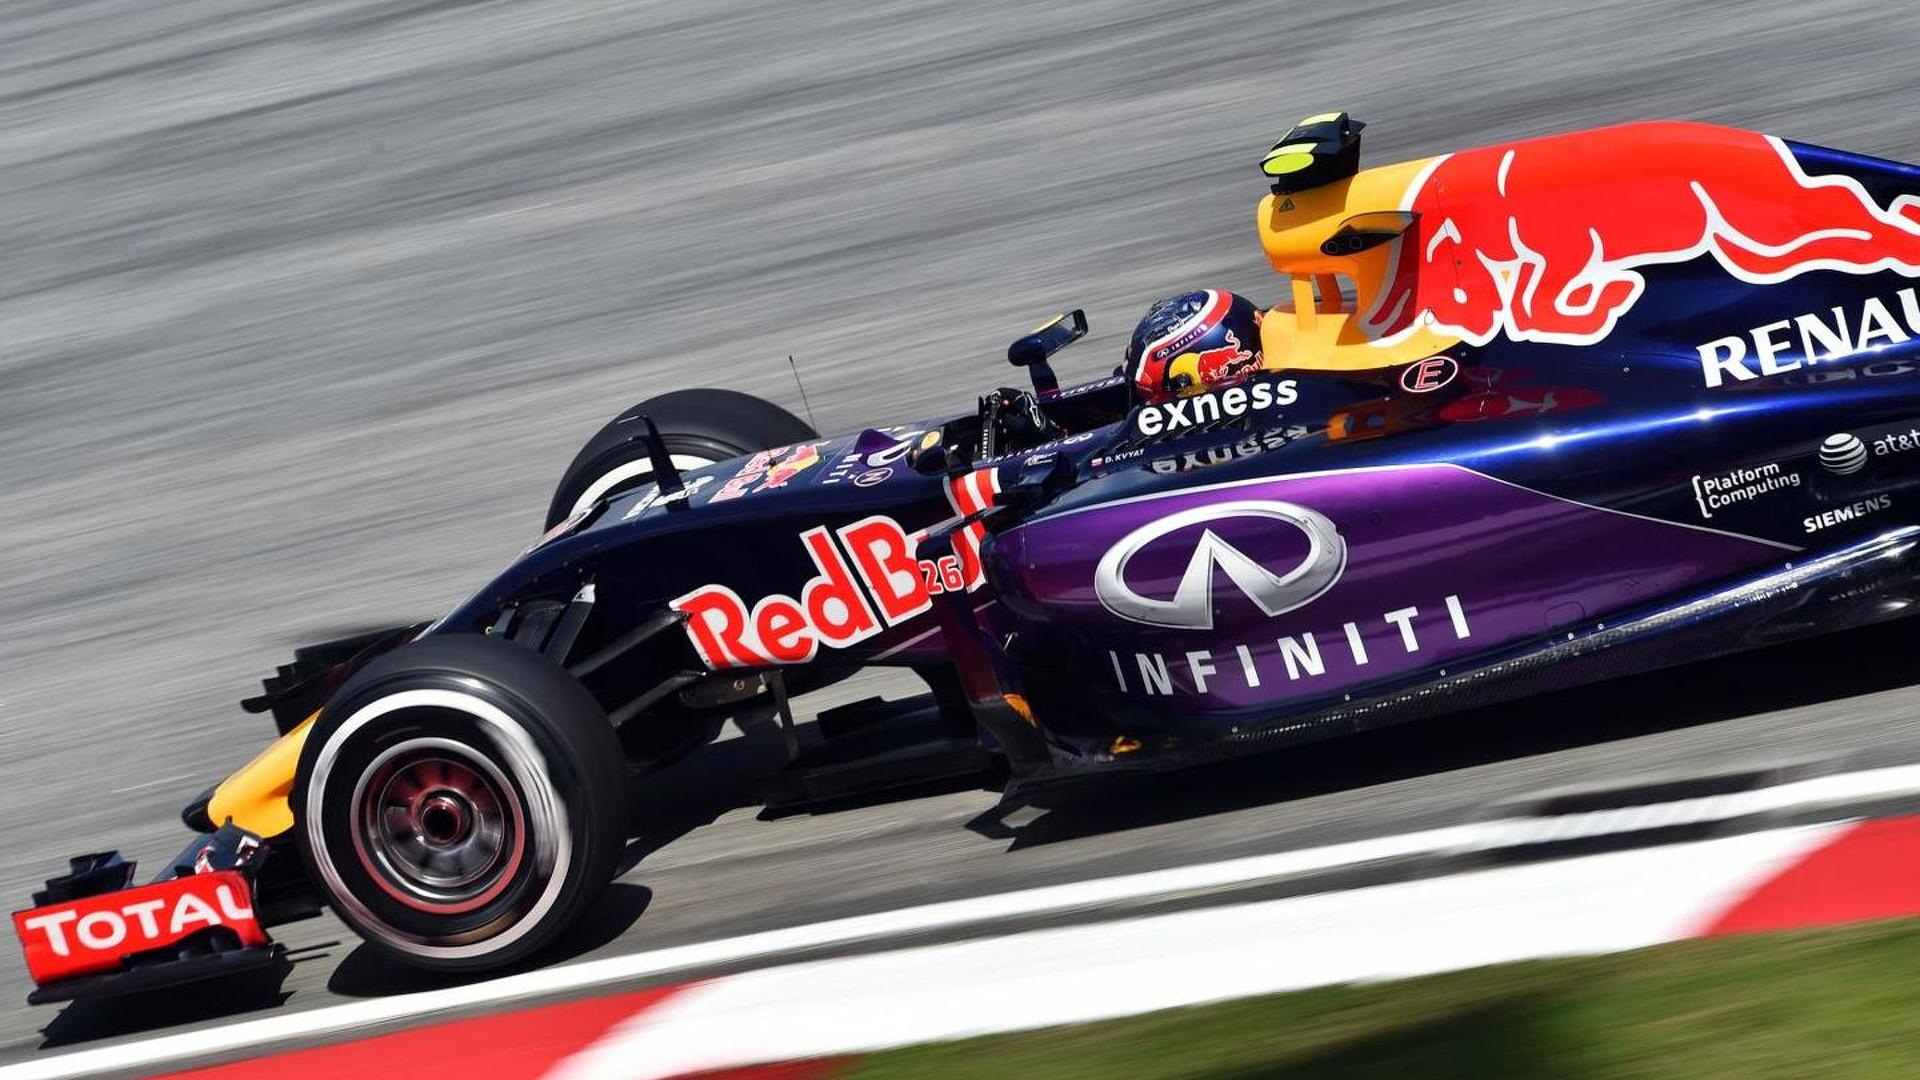 Marko admits Red Bull has 'chassis' problems